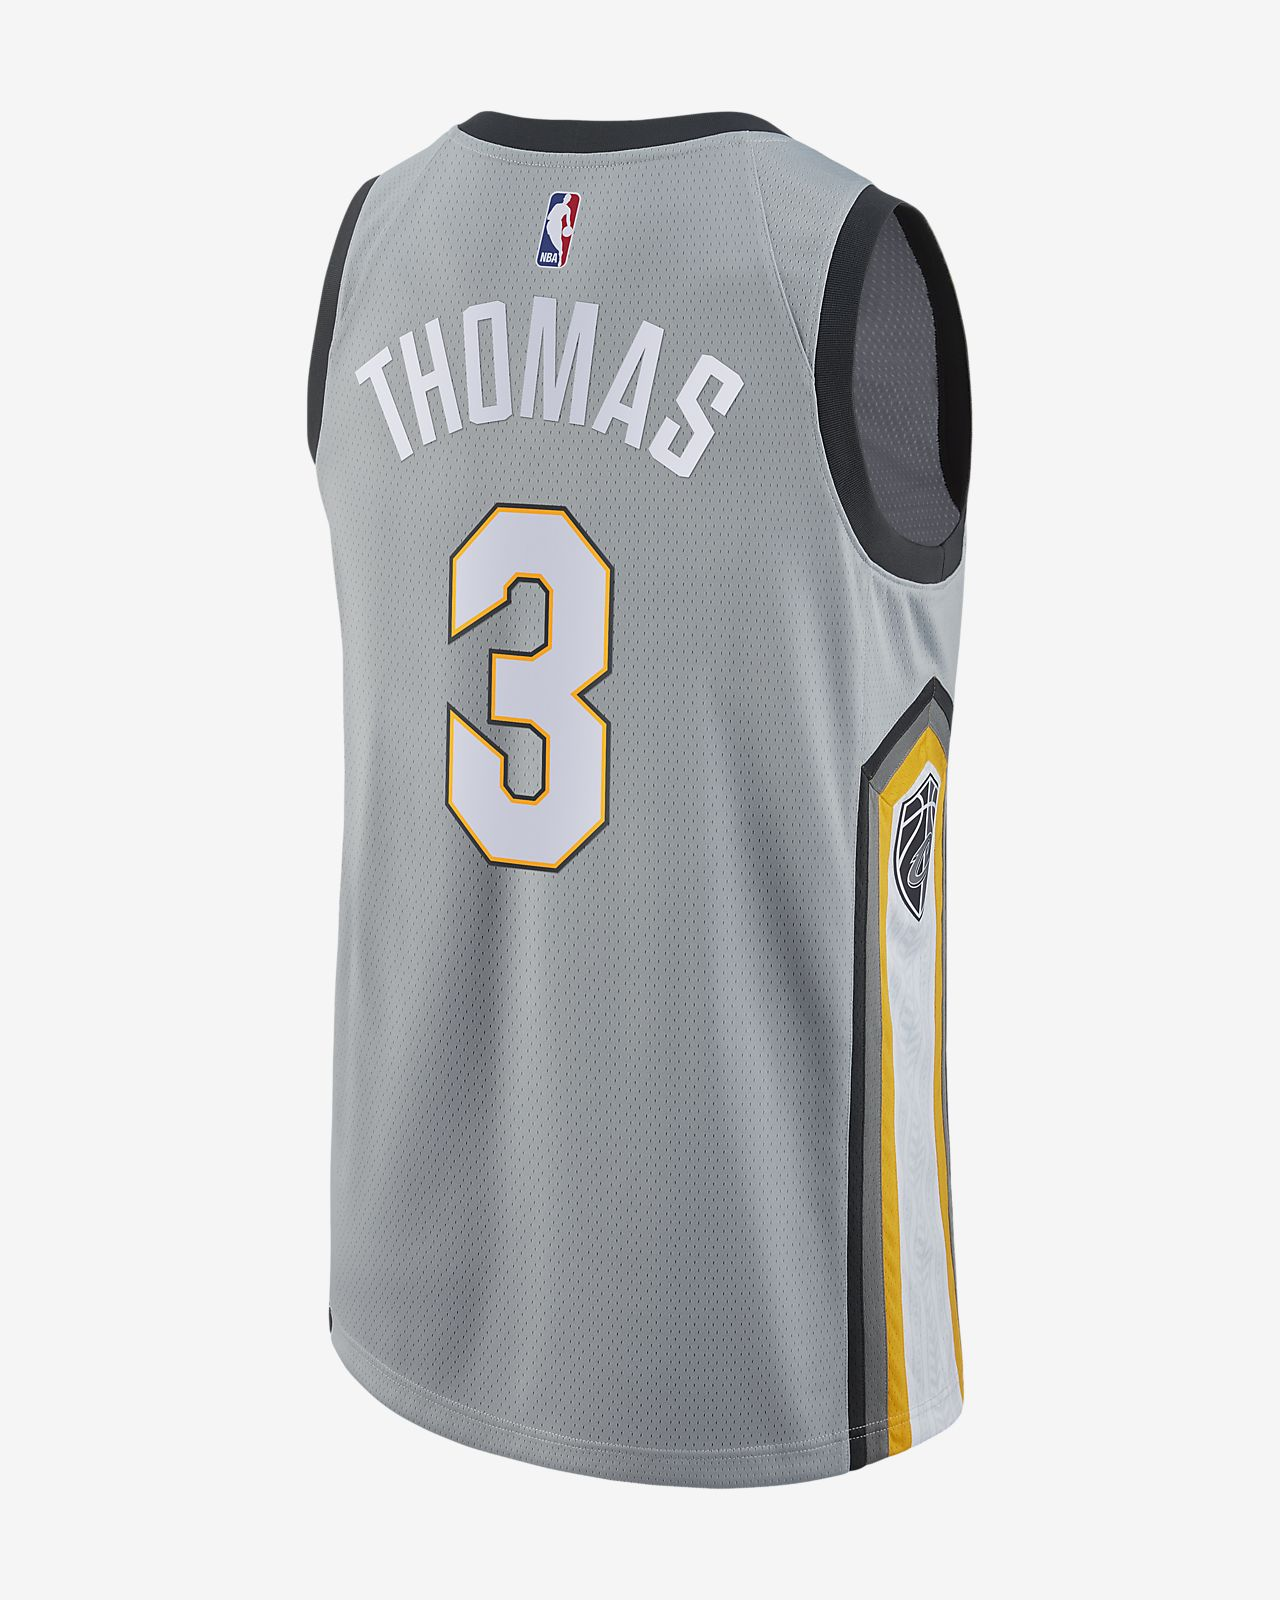 038a7a2f9255 ... Isaiah Thomas City Edition Swingman Jersey (Cleveland Cavaliers) Men s Nike  NBA Jersey